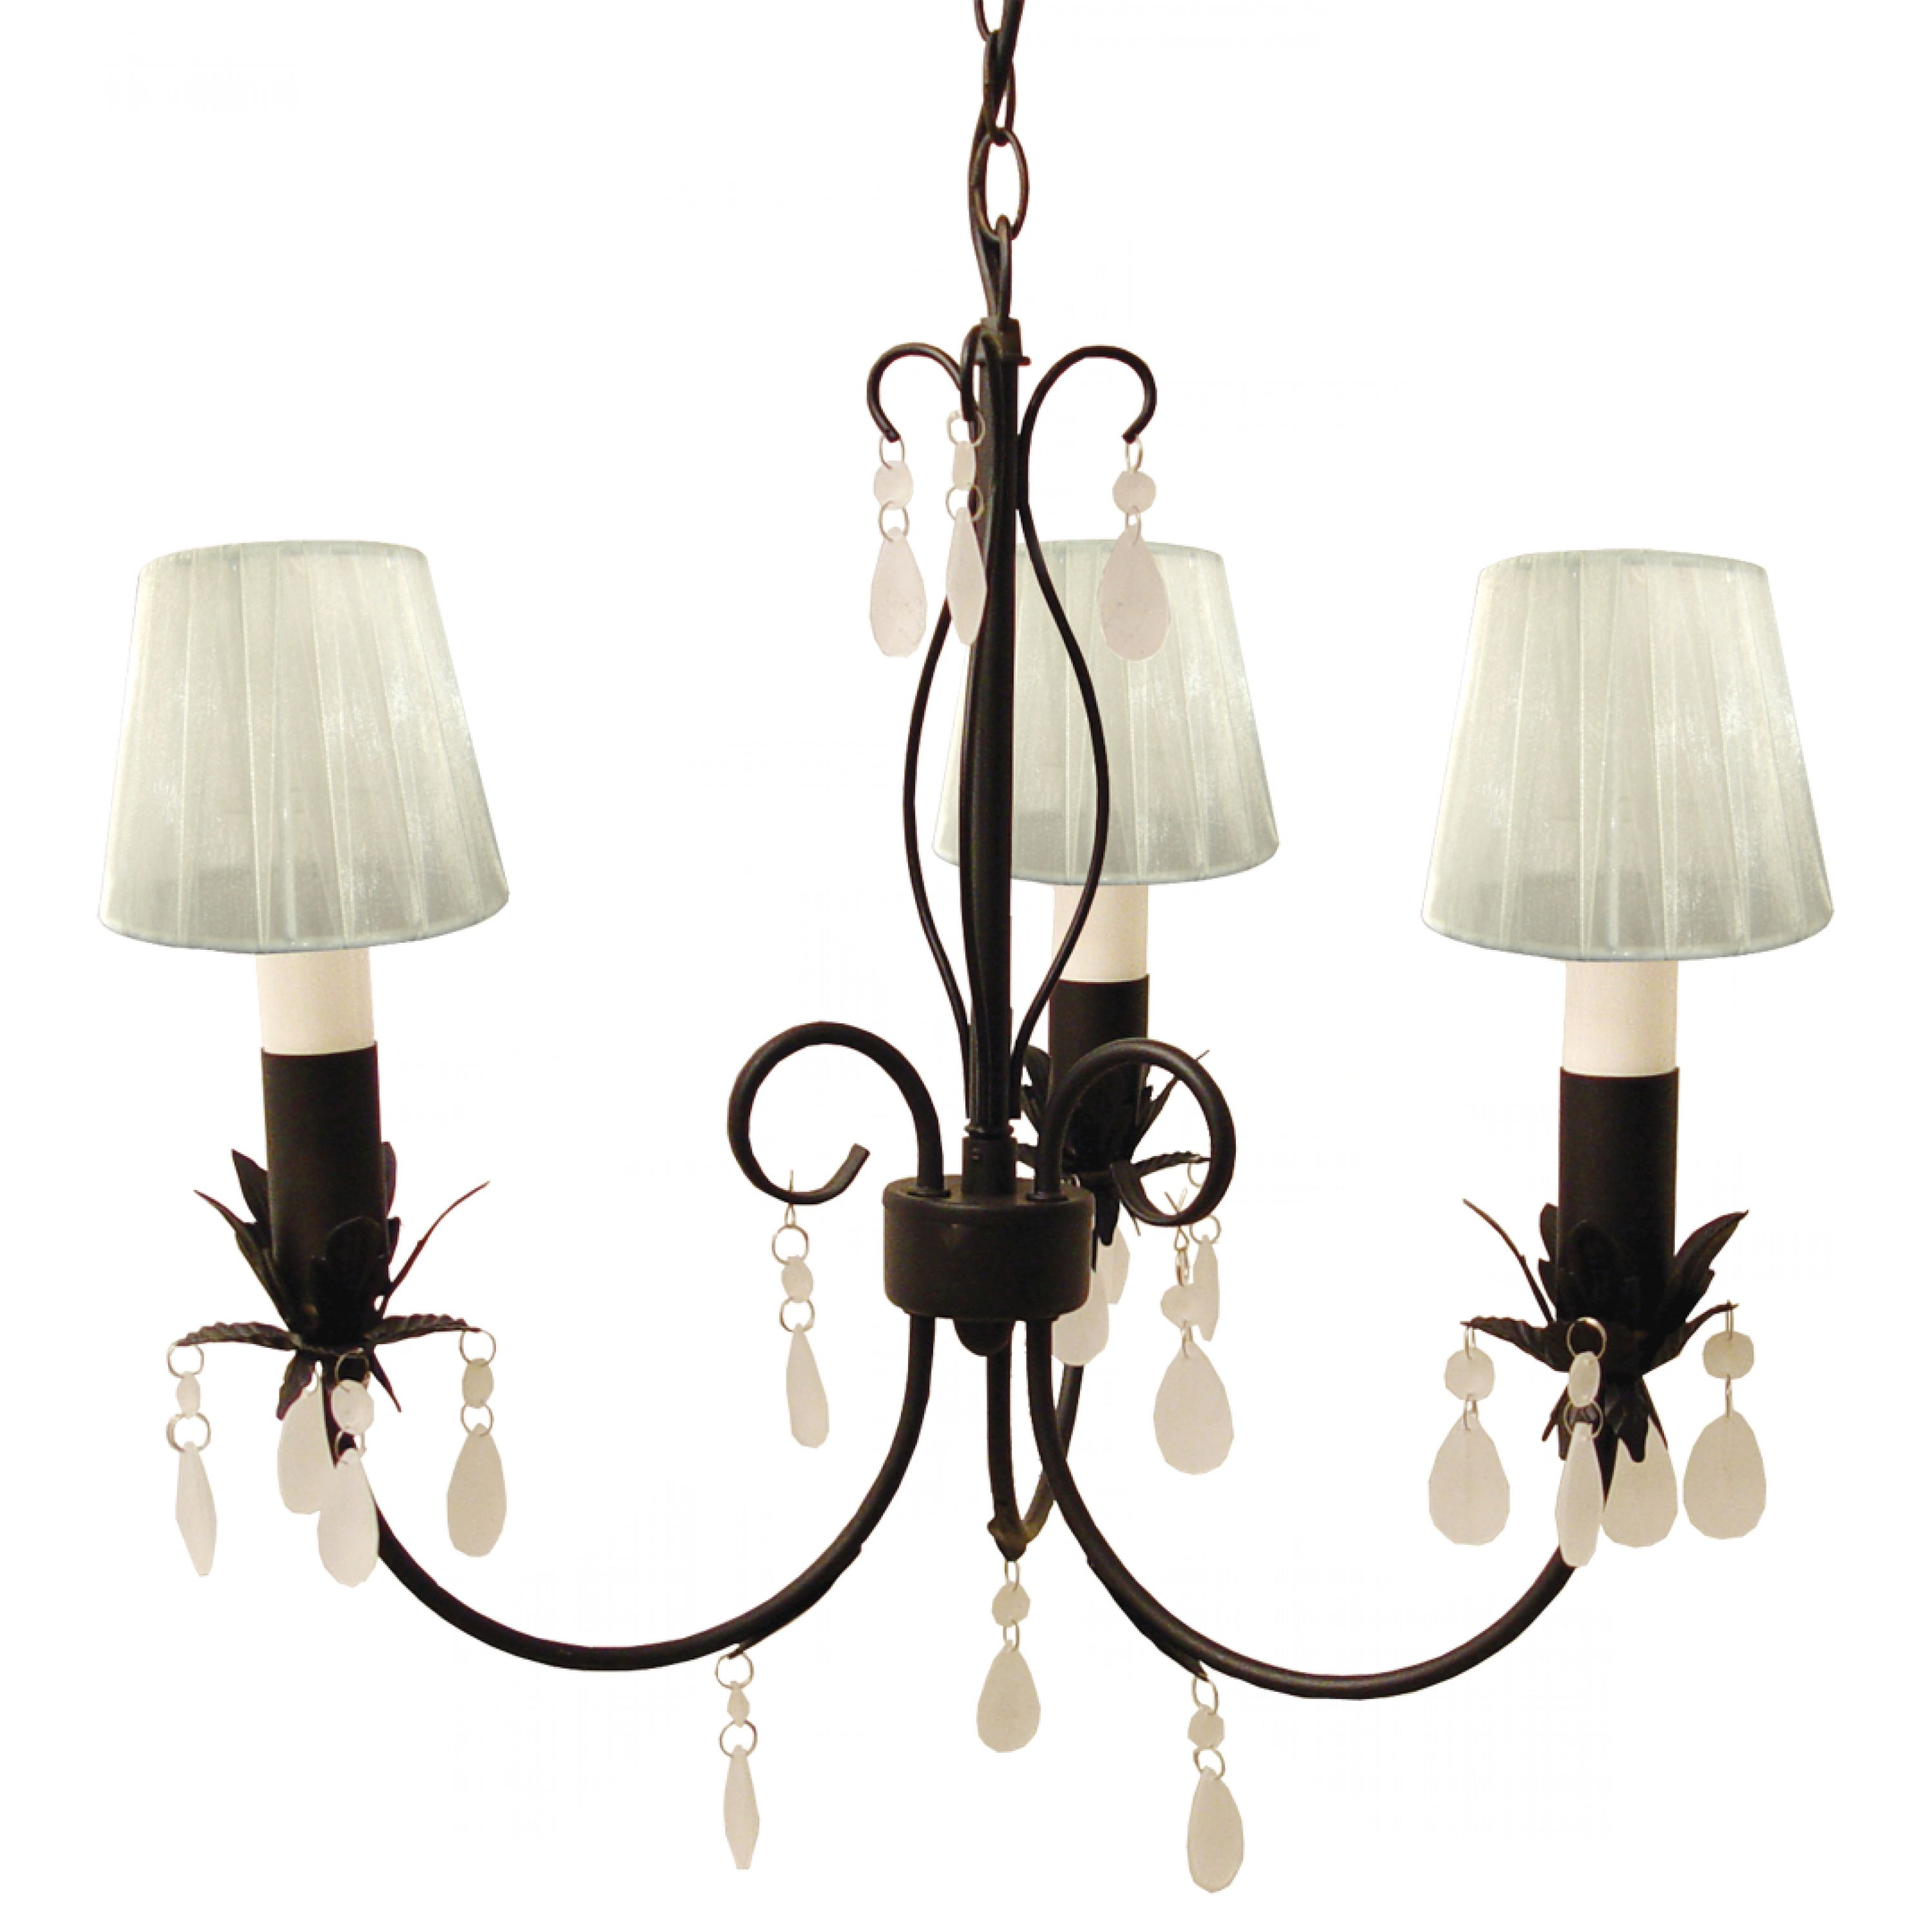 Bistro 2 Bar Light (antique brass)